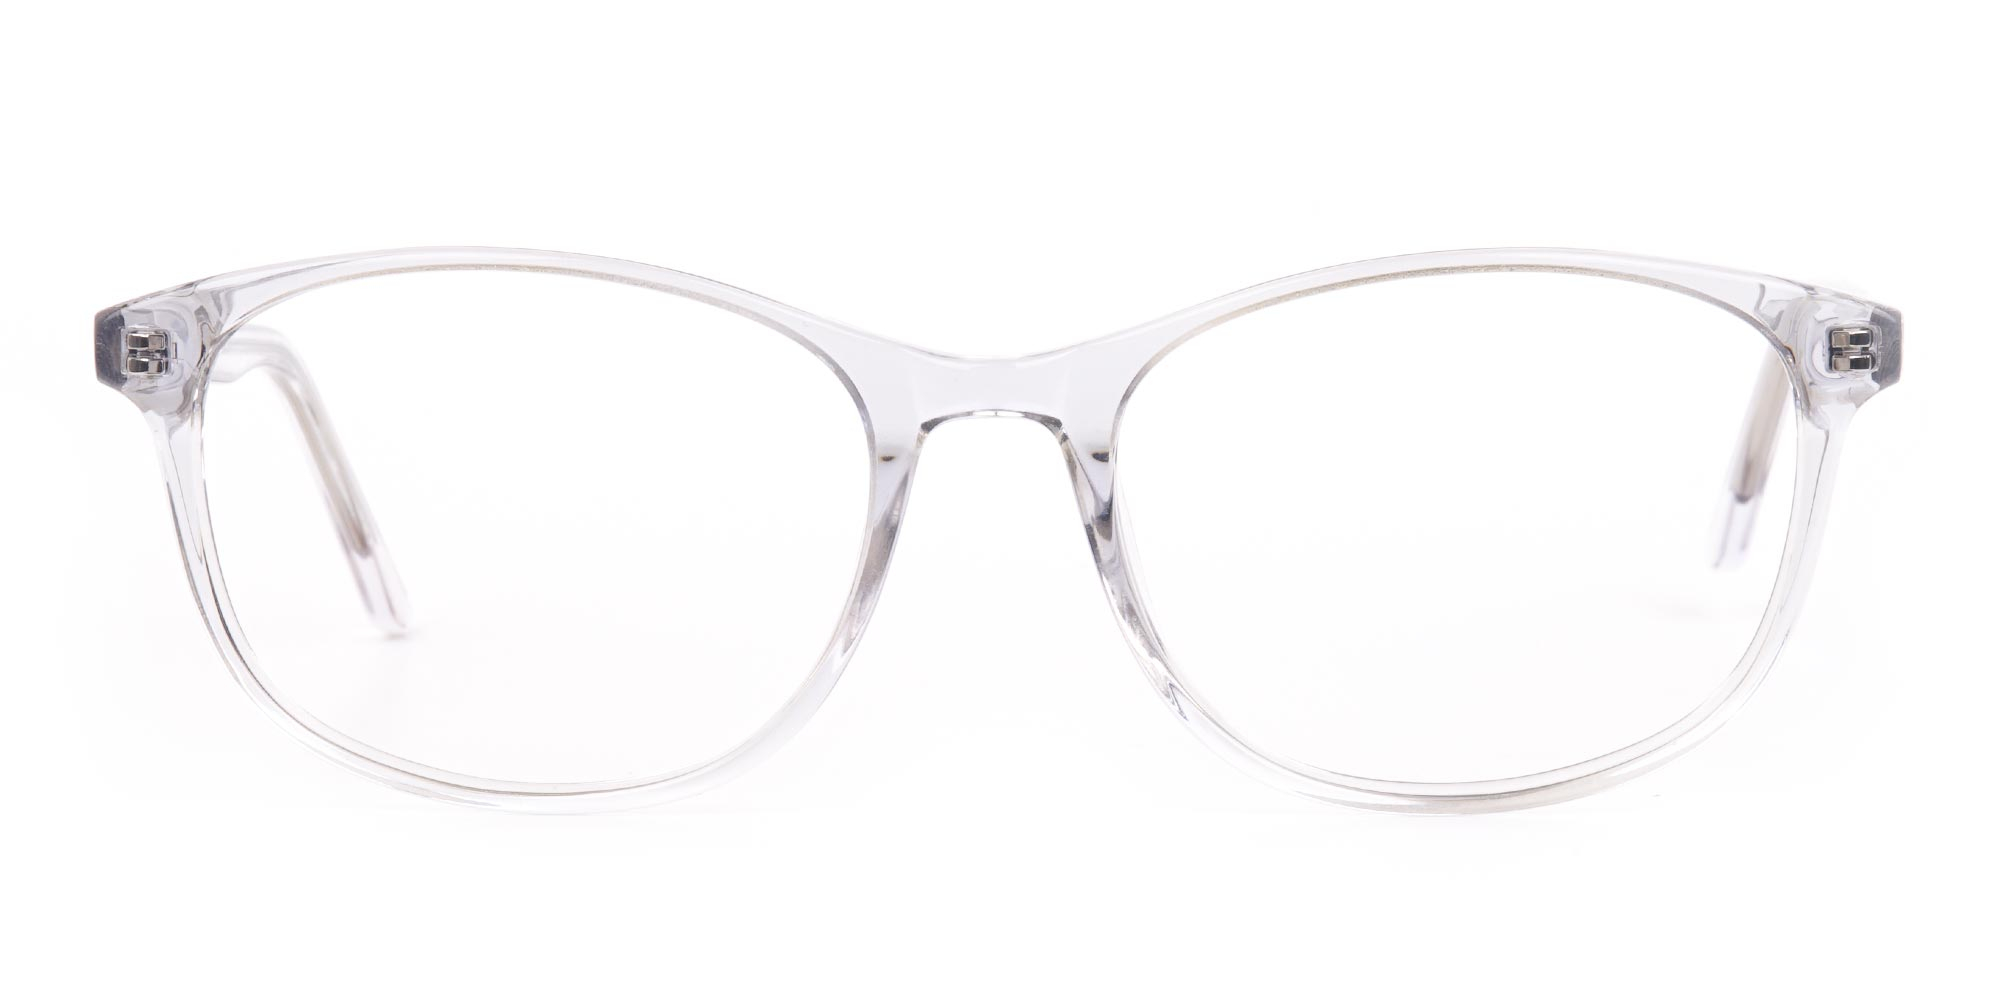 crystal glasses for men and women